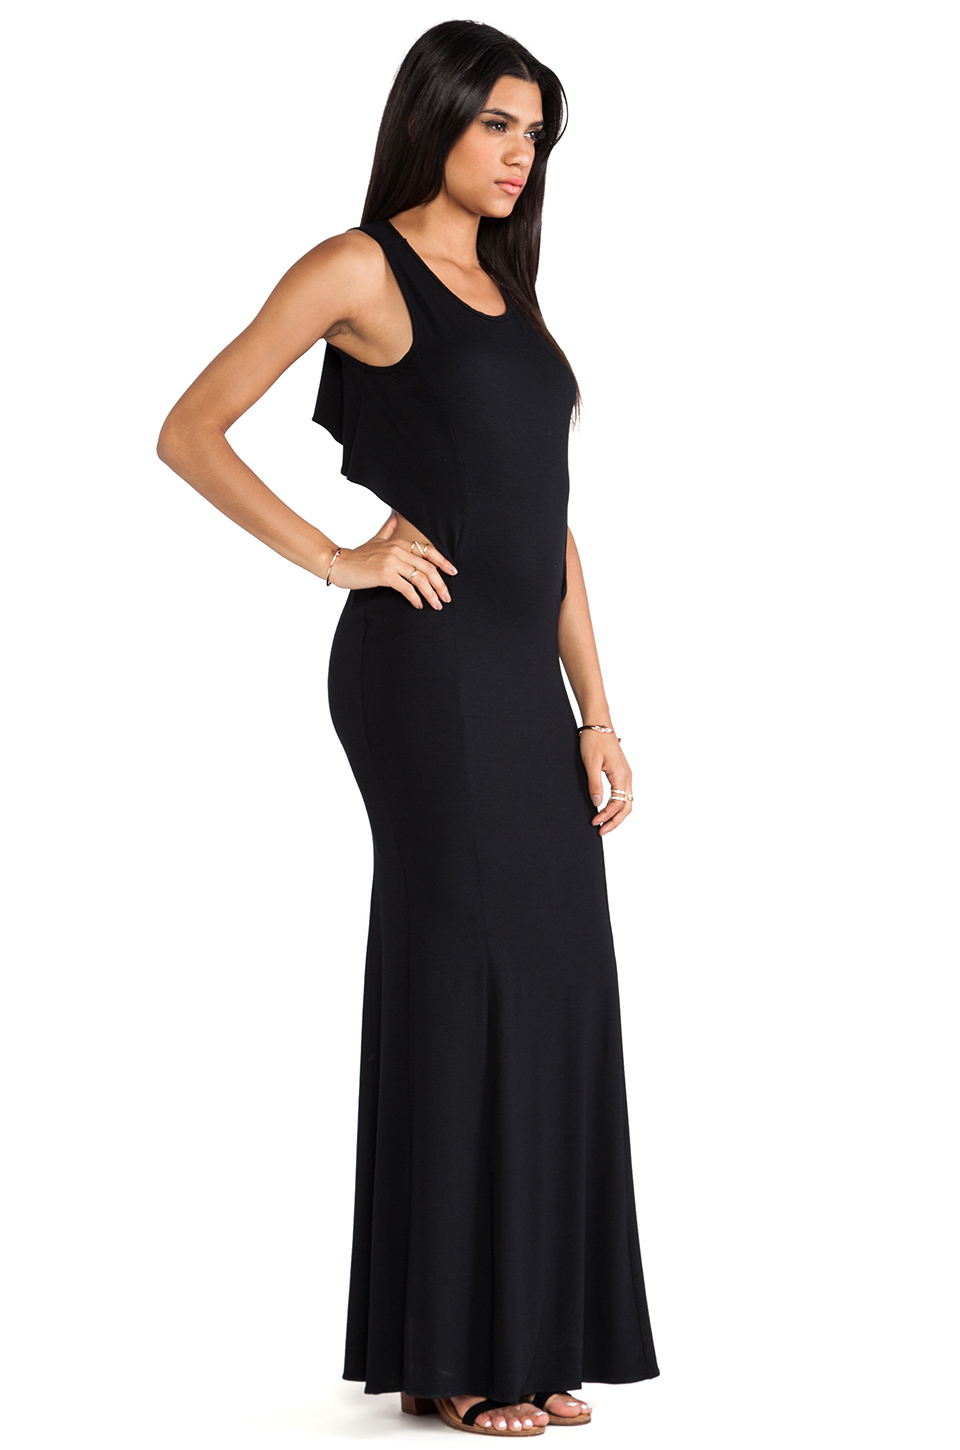 Boulee Cruz Open Back Maxi Dress in Black